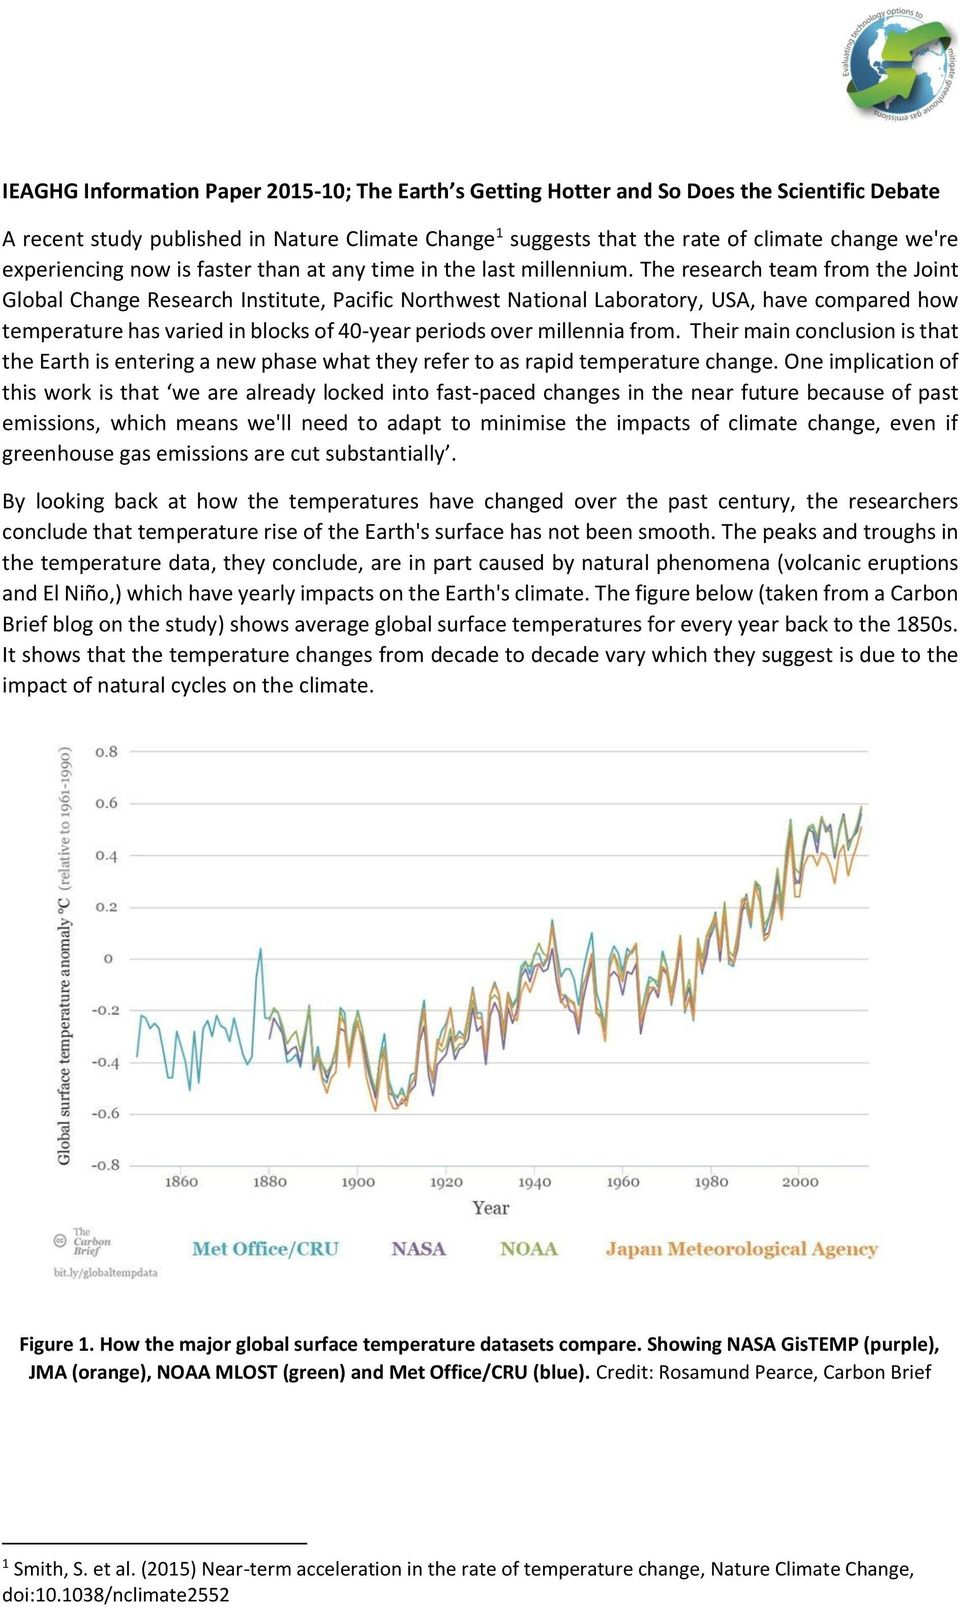 The research team from the Joint Global Change Research Institute, Pacific Northwest National Laboratory, USA, have compared how temperature has varied in blocks of 40-year periods over millennia